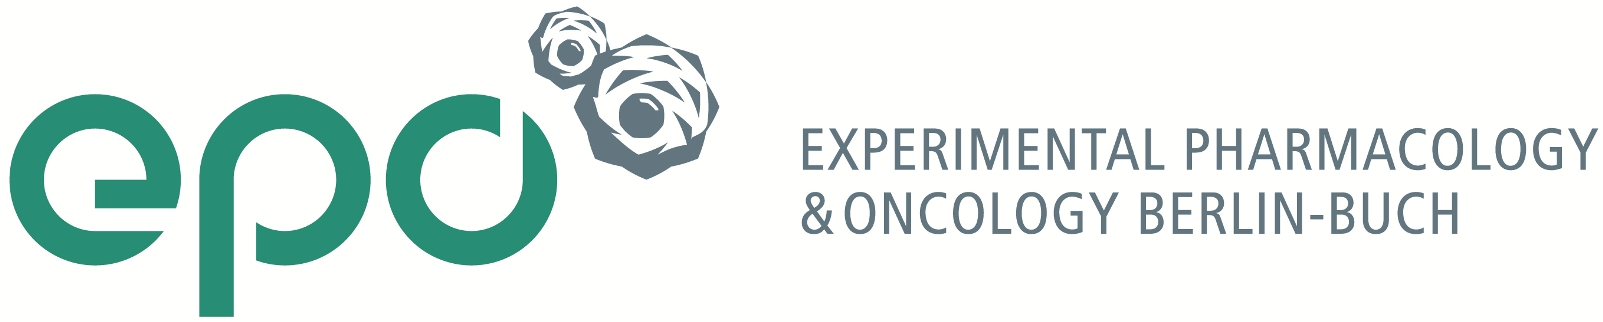 Experimental Pharmacology and Oncology GmbH, Germany